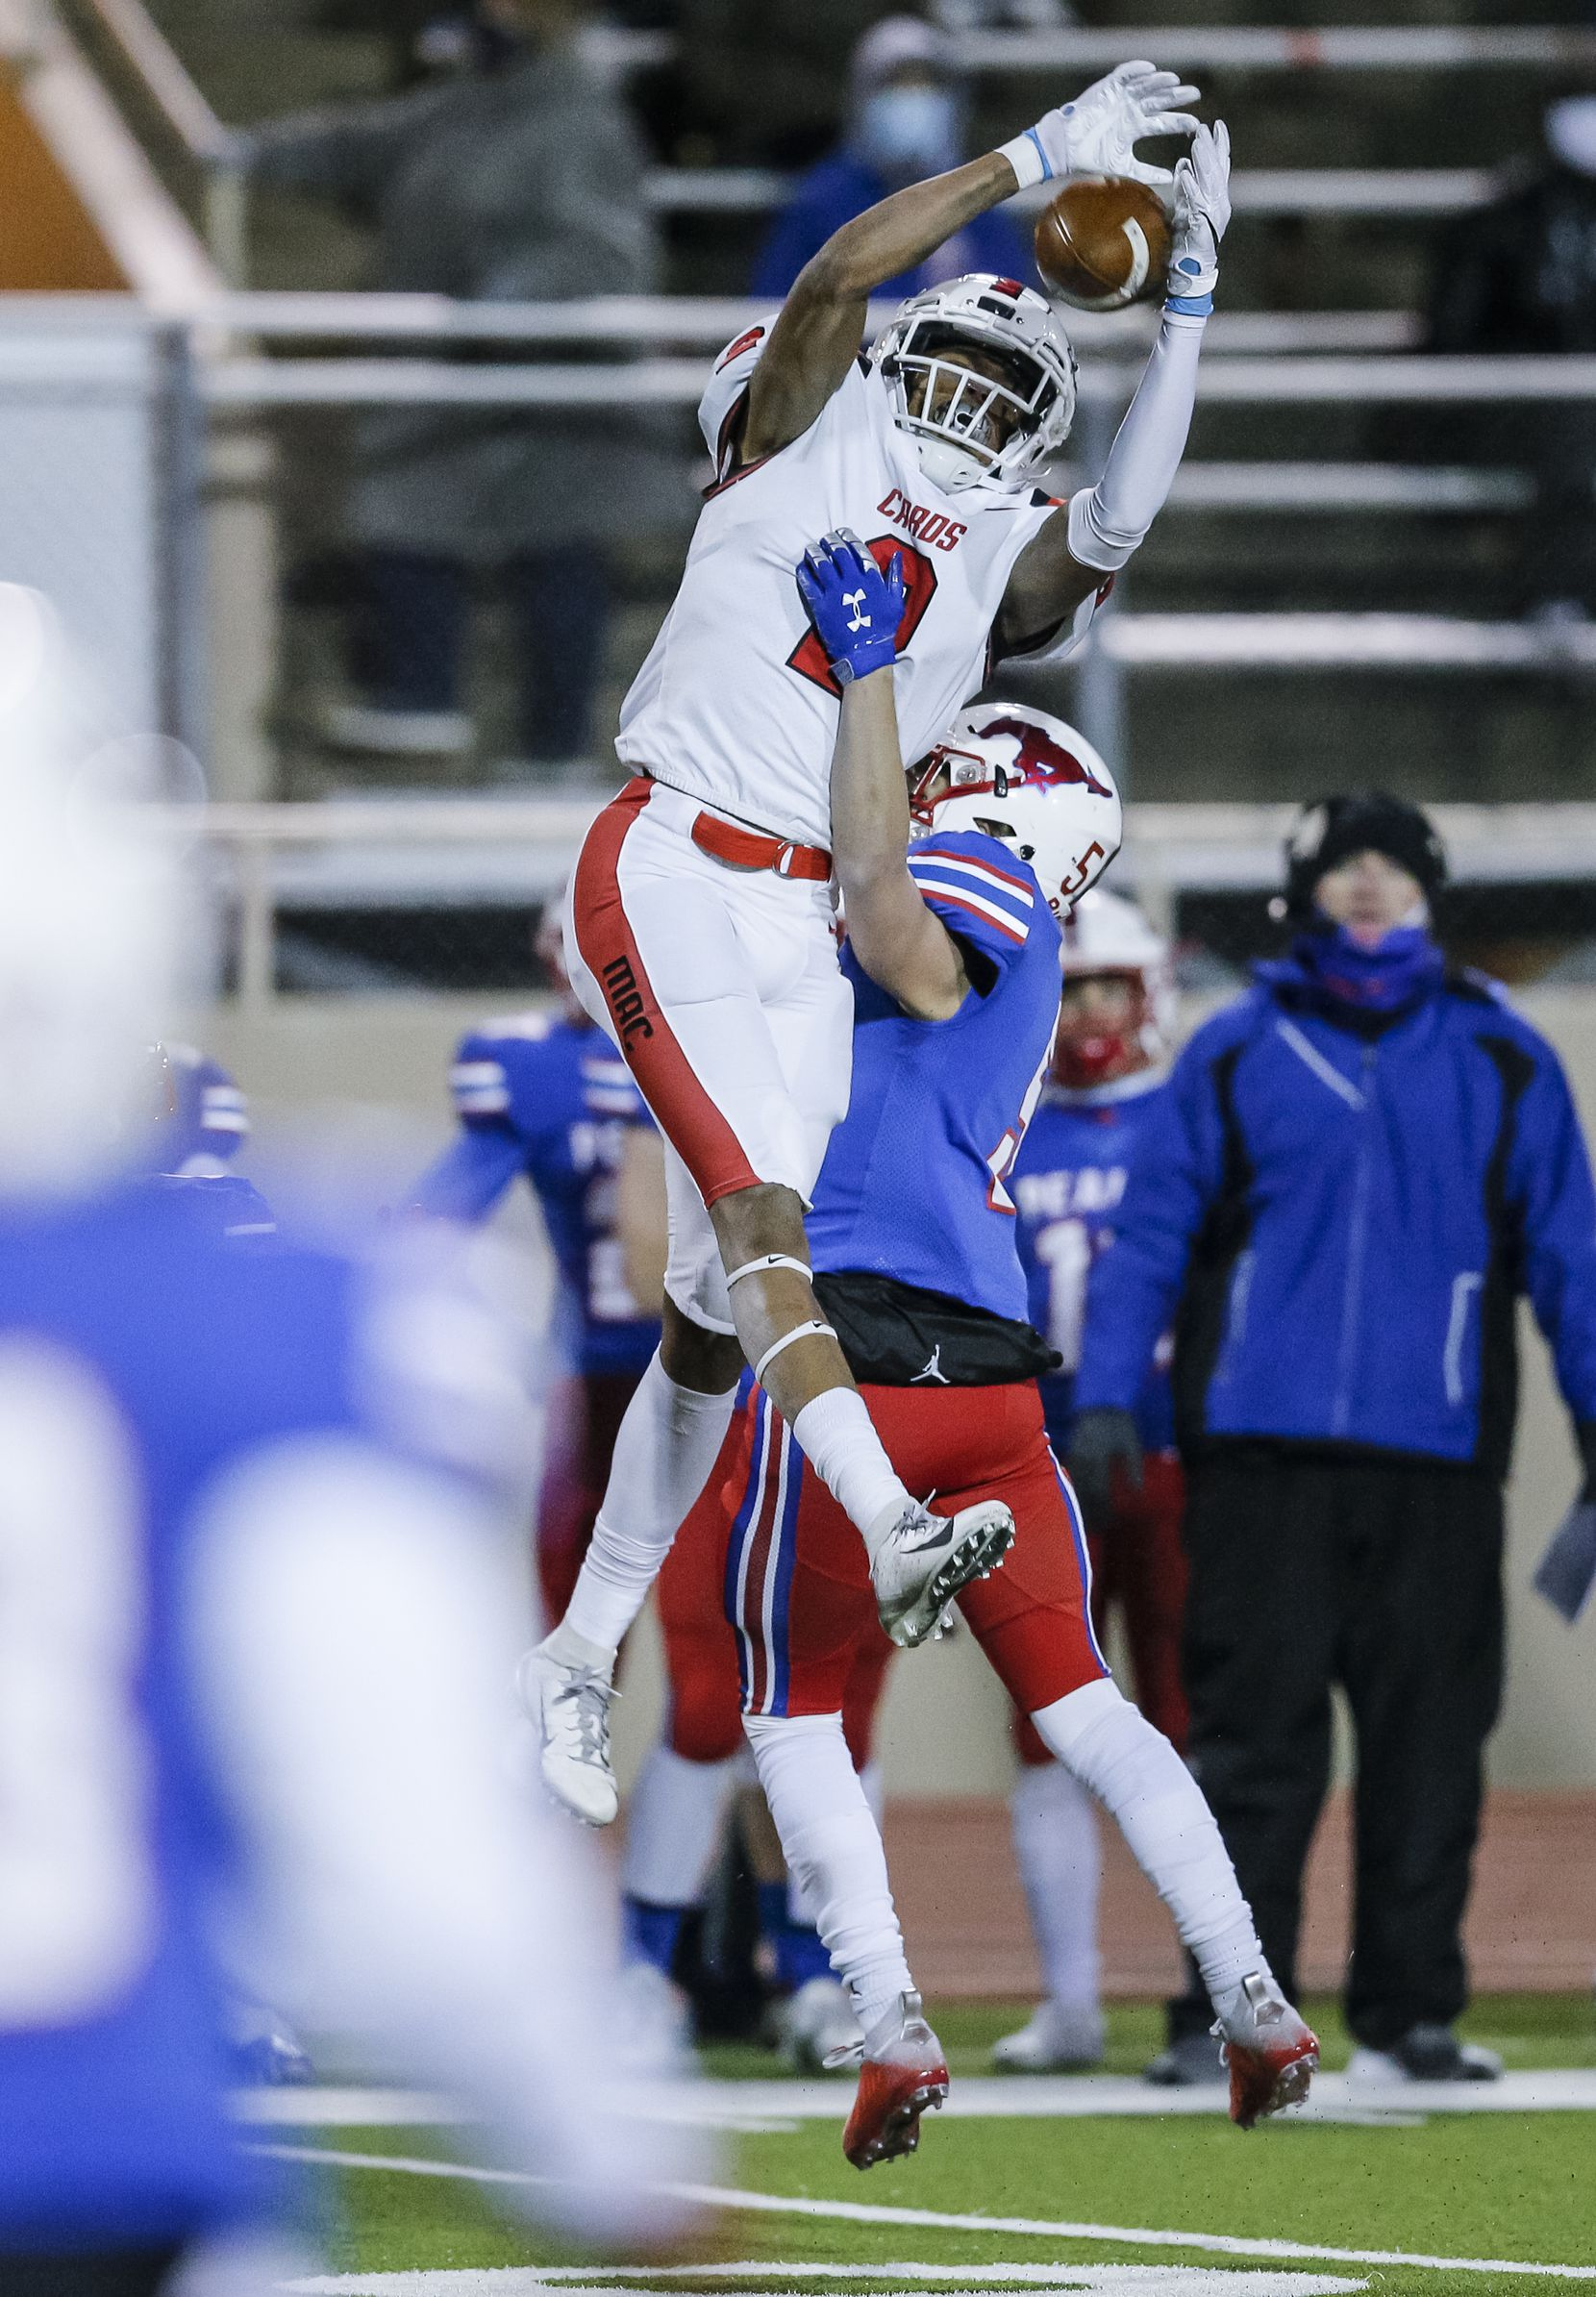 Irving MacArthur senior Lee Hamilton (2) is unable to catch a pass as JJ Pearce Demond White (5) defends during the first half of a high school playoff football game at Eagle-Mustang Stadium in Richardson, Thursday, December 3, 2020. (Brandon Wade/Special Contributor)